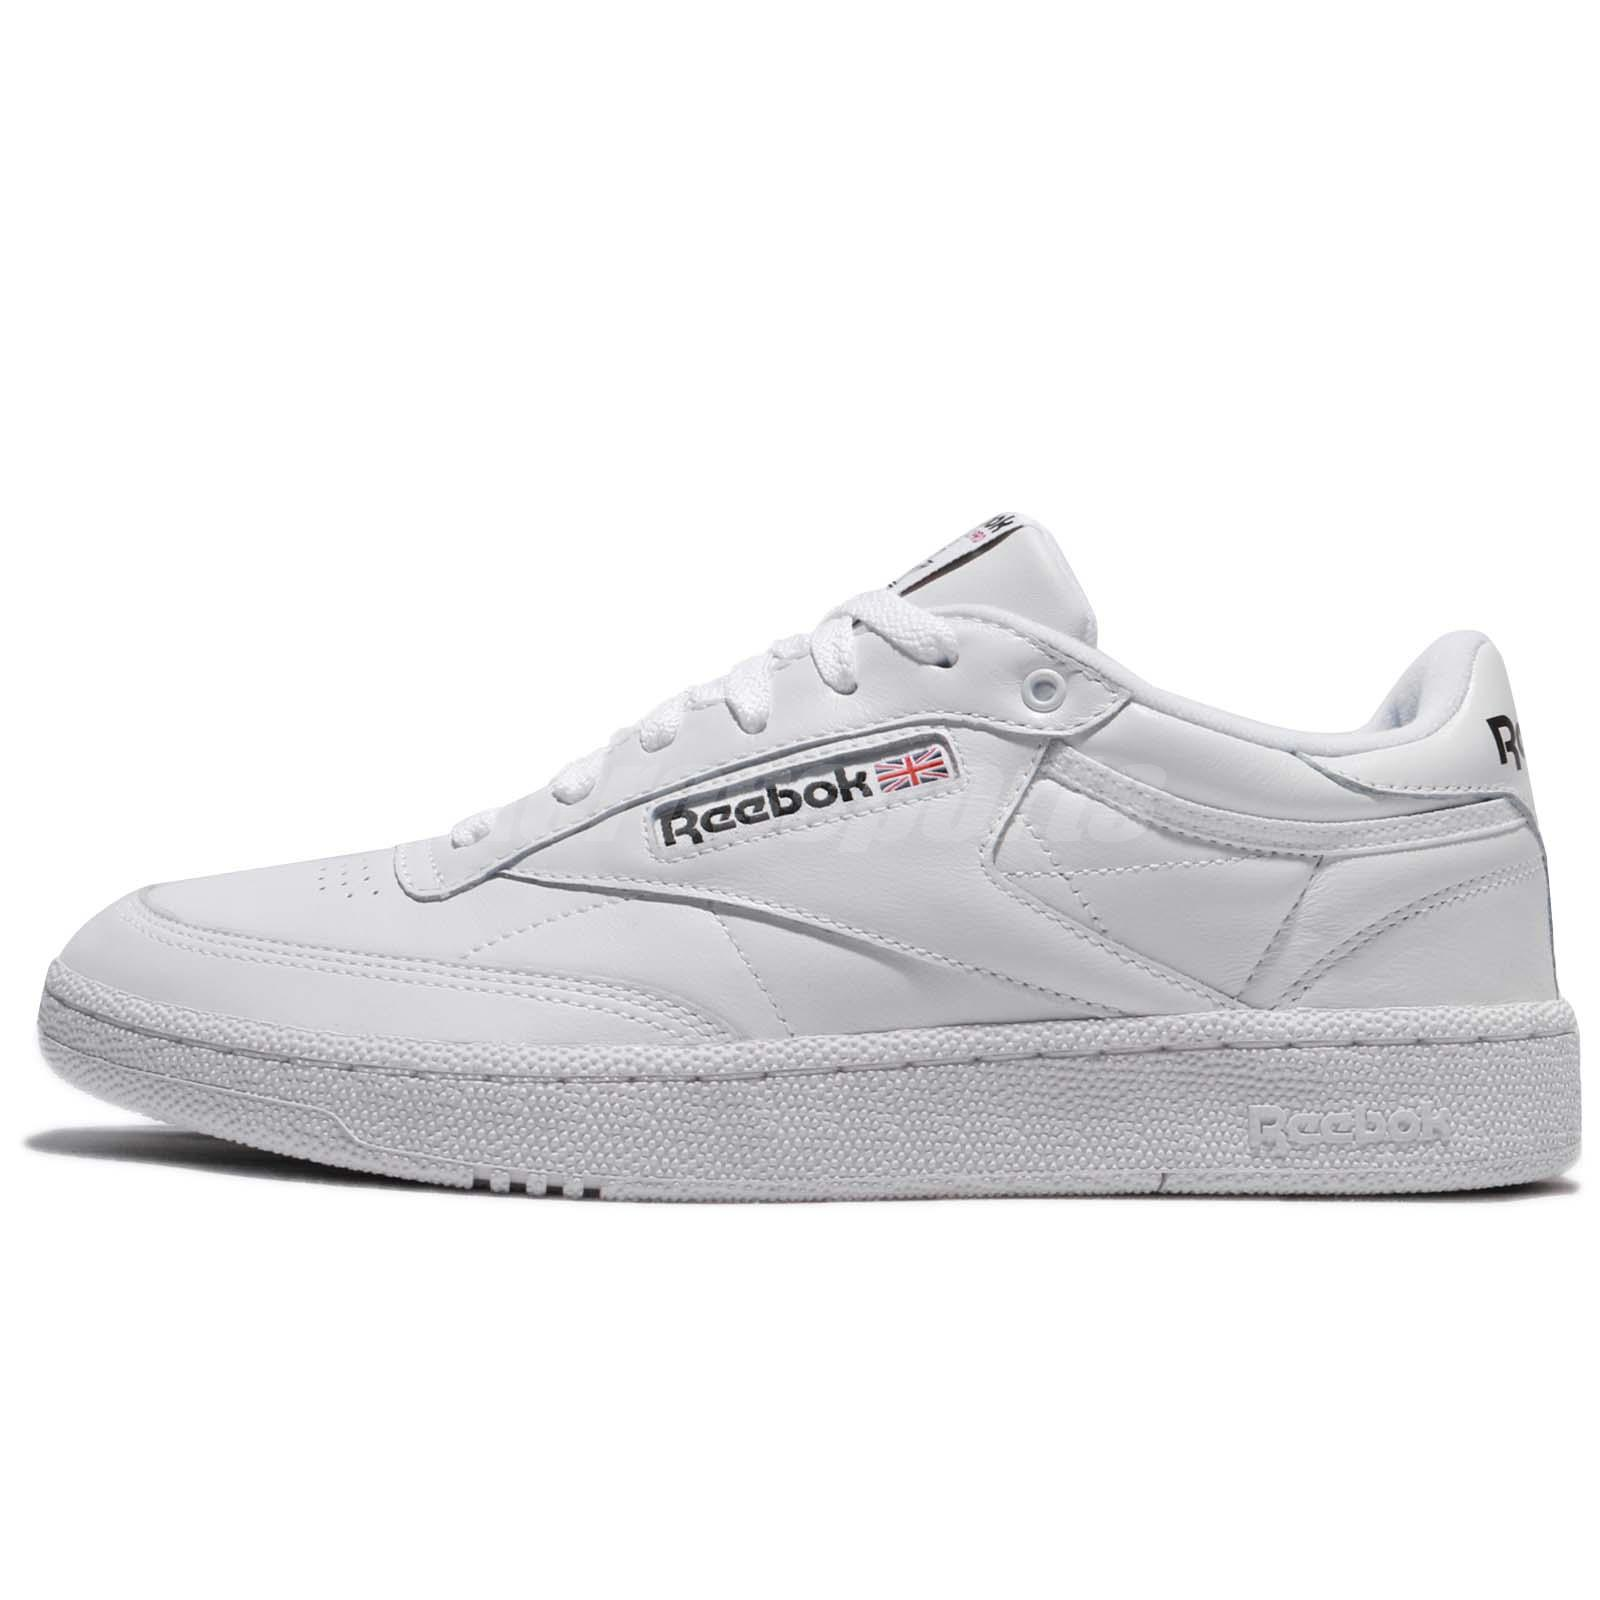 Reebok Club C 85 Pro Leather White Classic Men Shoes Sneakers Trainers  CM9430 cc0b423ba